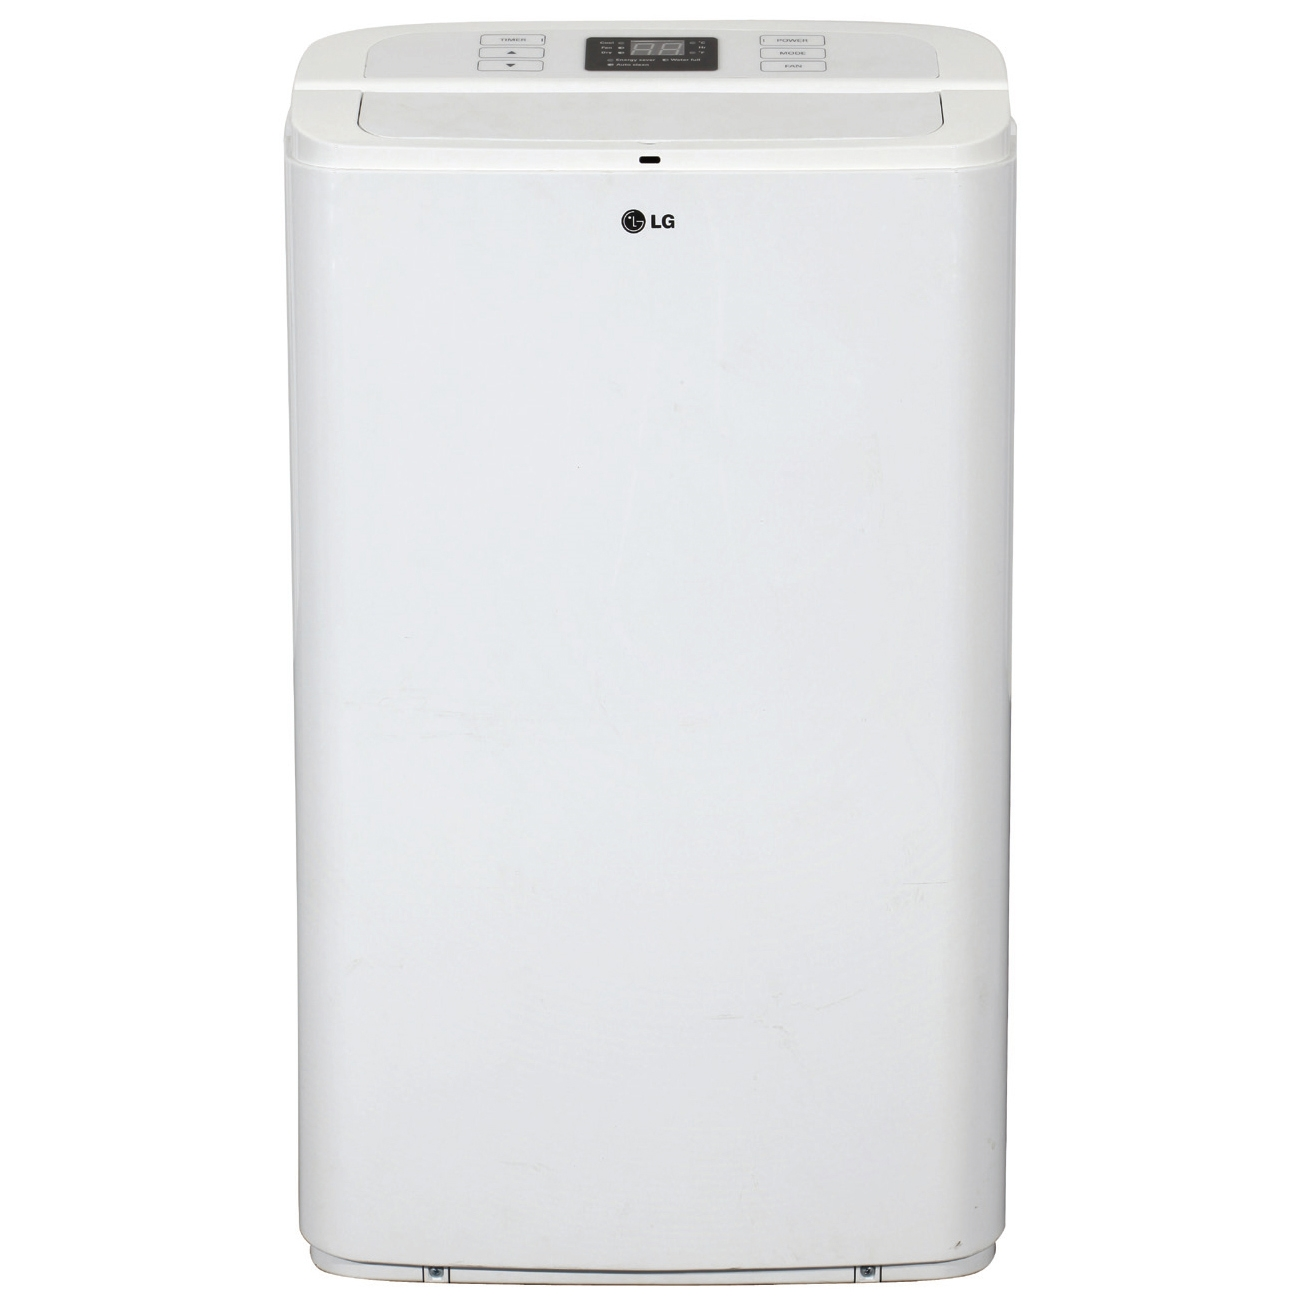 lg electronics 11 000 btu portable air c walmart com rh walmart com LG LP0910WNR Air Conditioner Manual LG Split Air Conditioner Manual